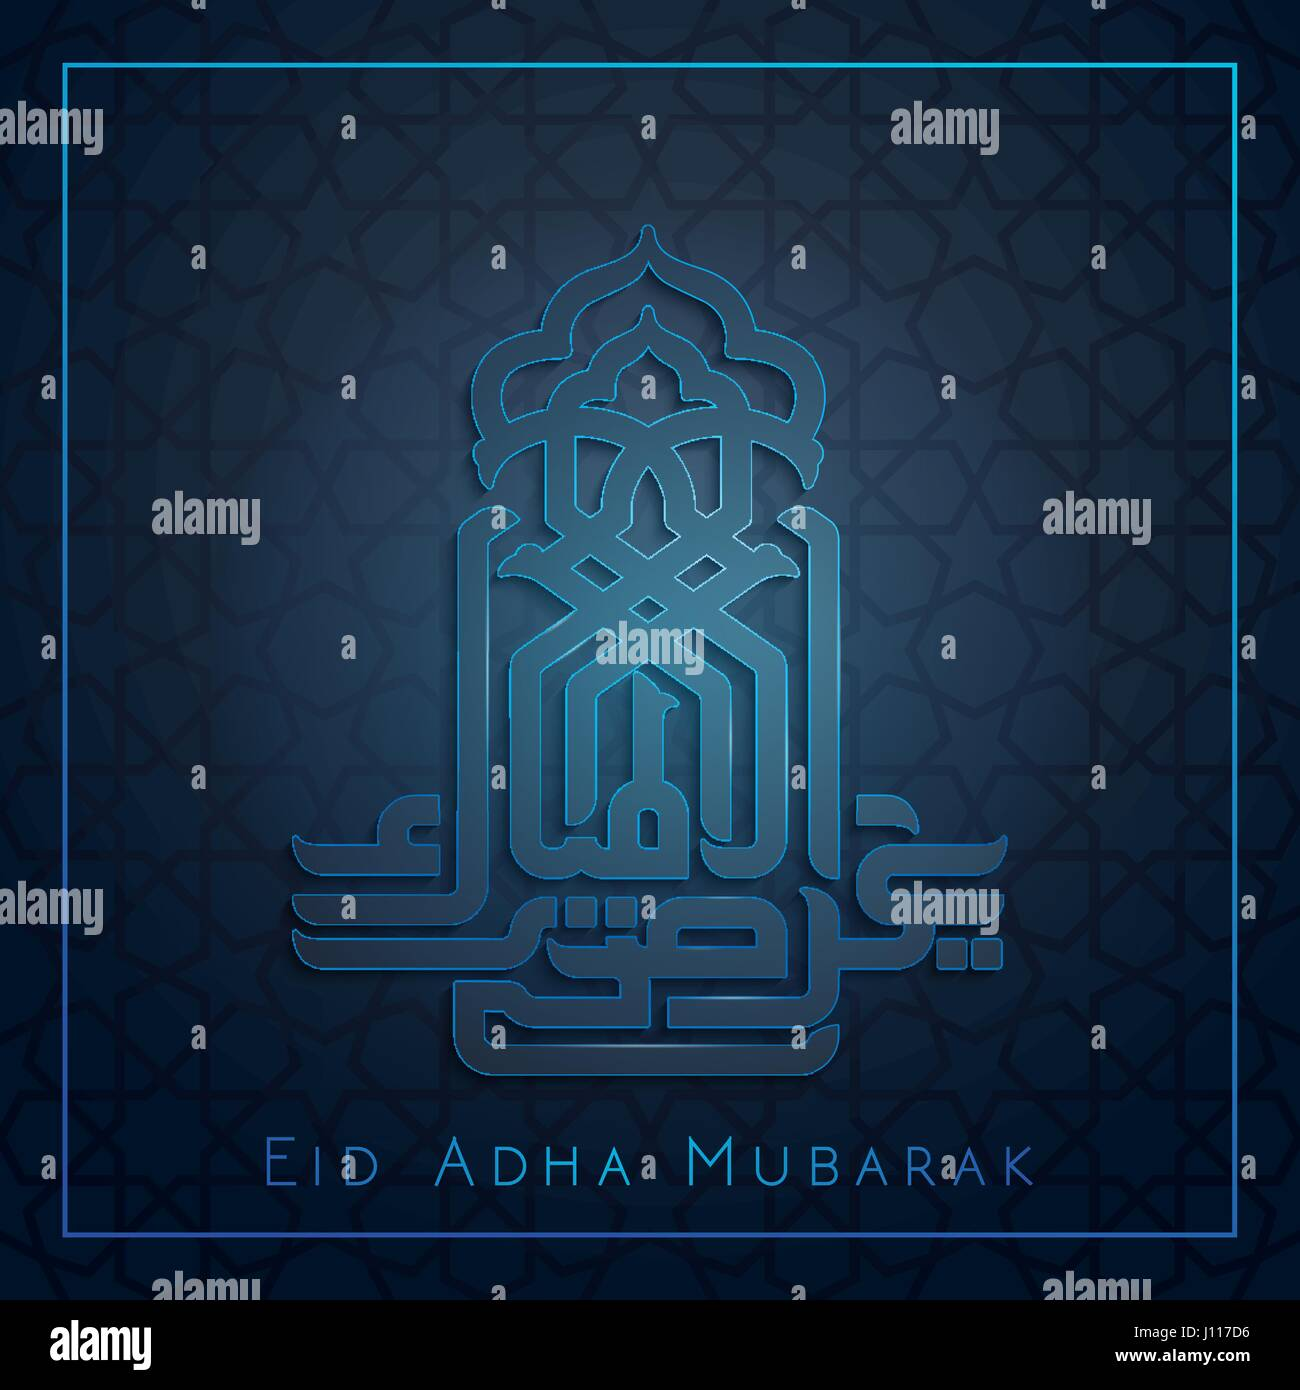 Islamic Beautiful Arabic Calligraphy Design Eid Adha Mubarak